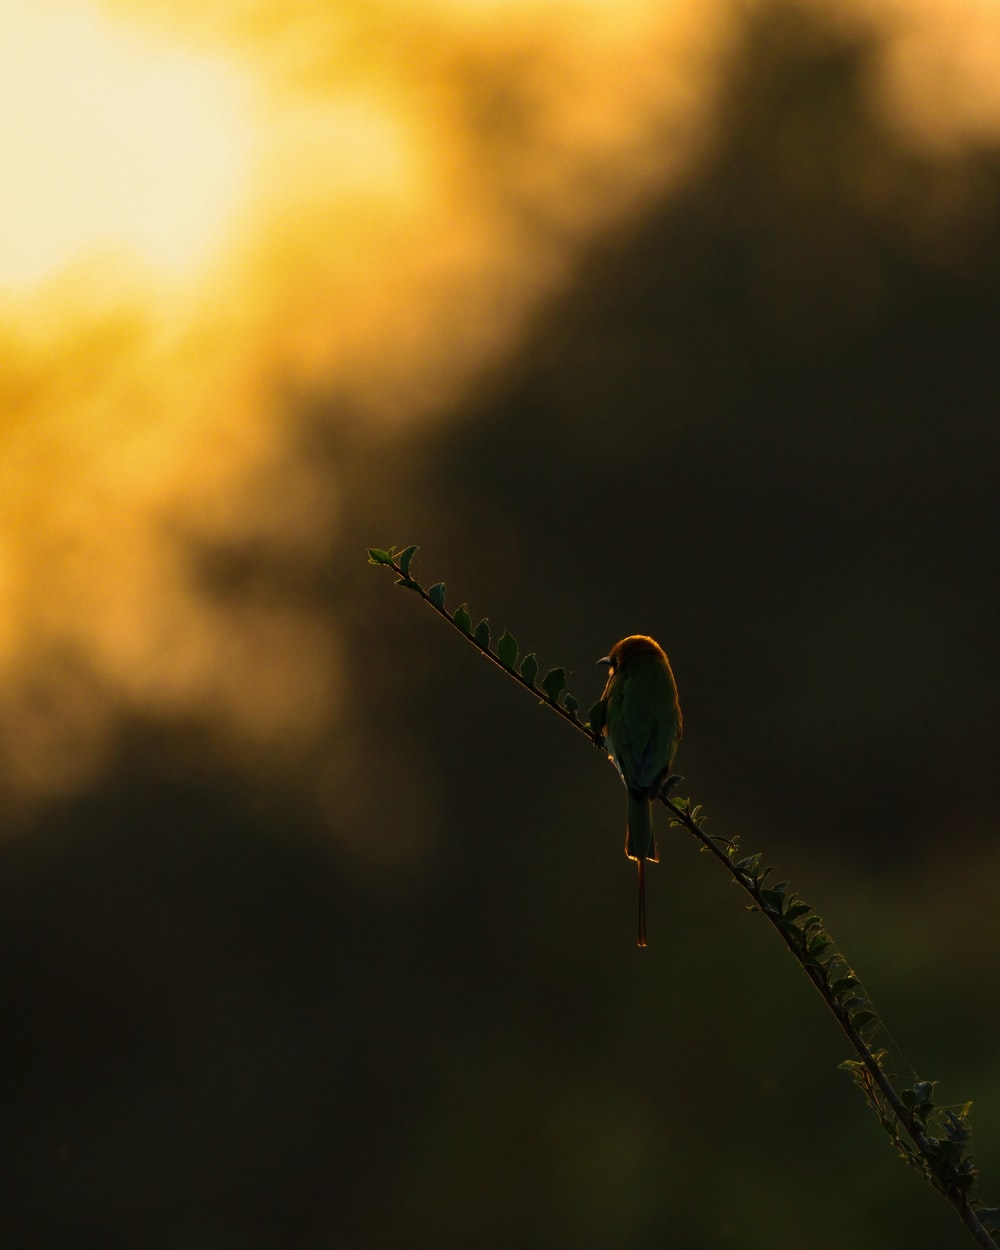 green and red bird on brown stick